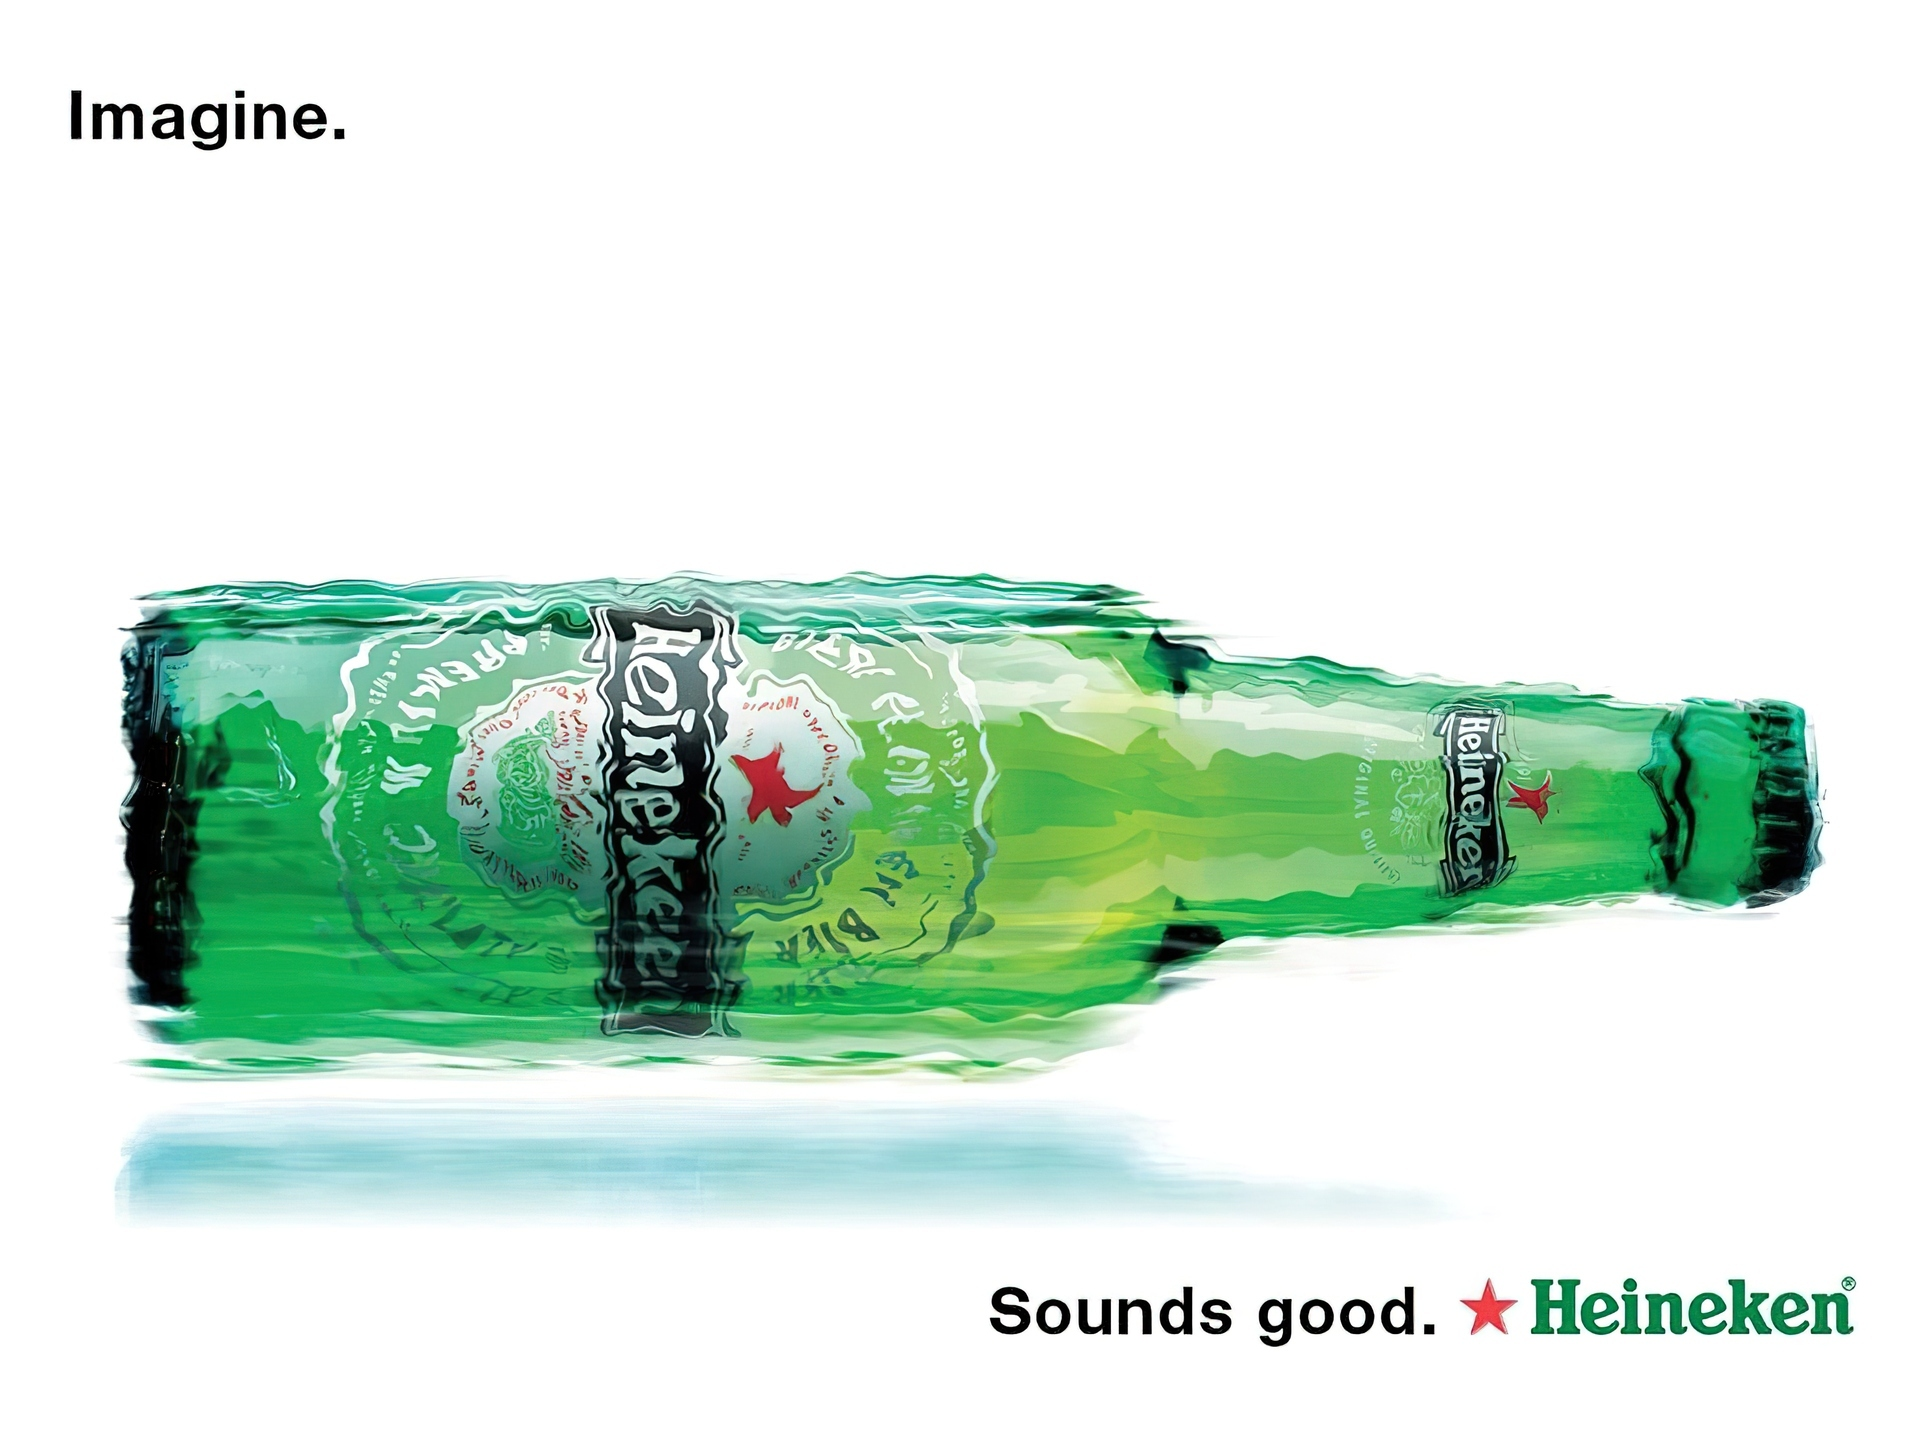 Heineken, Imagine